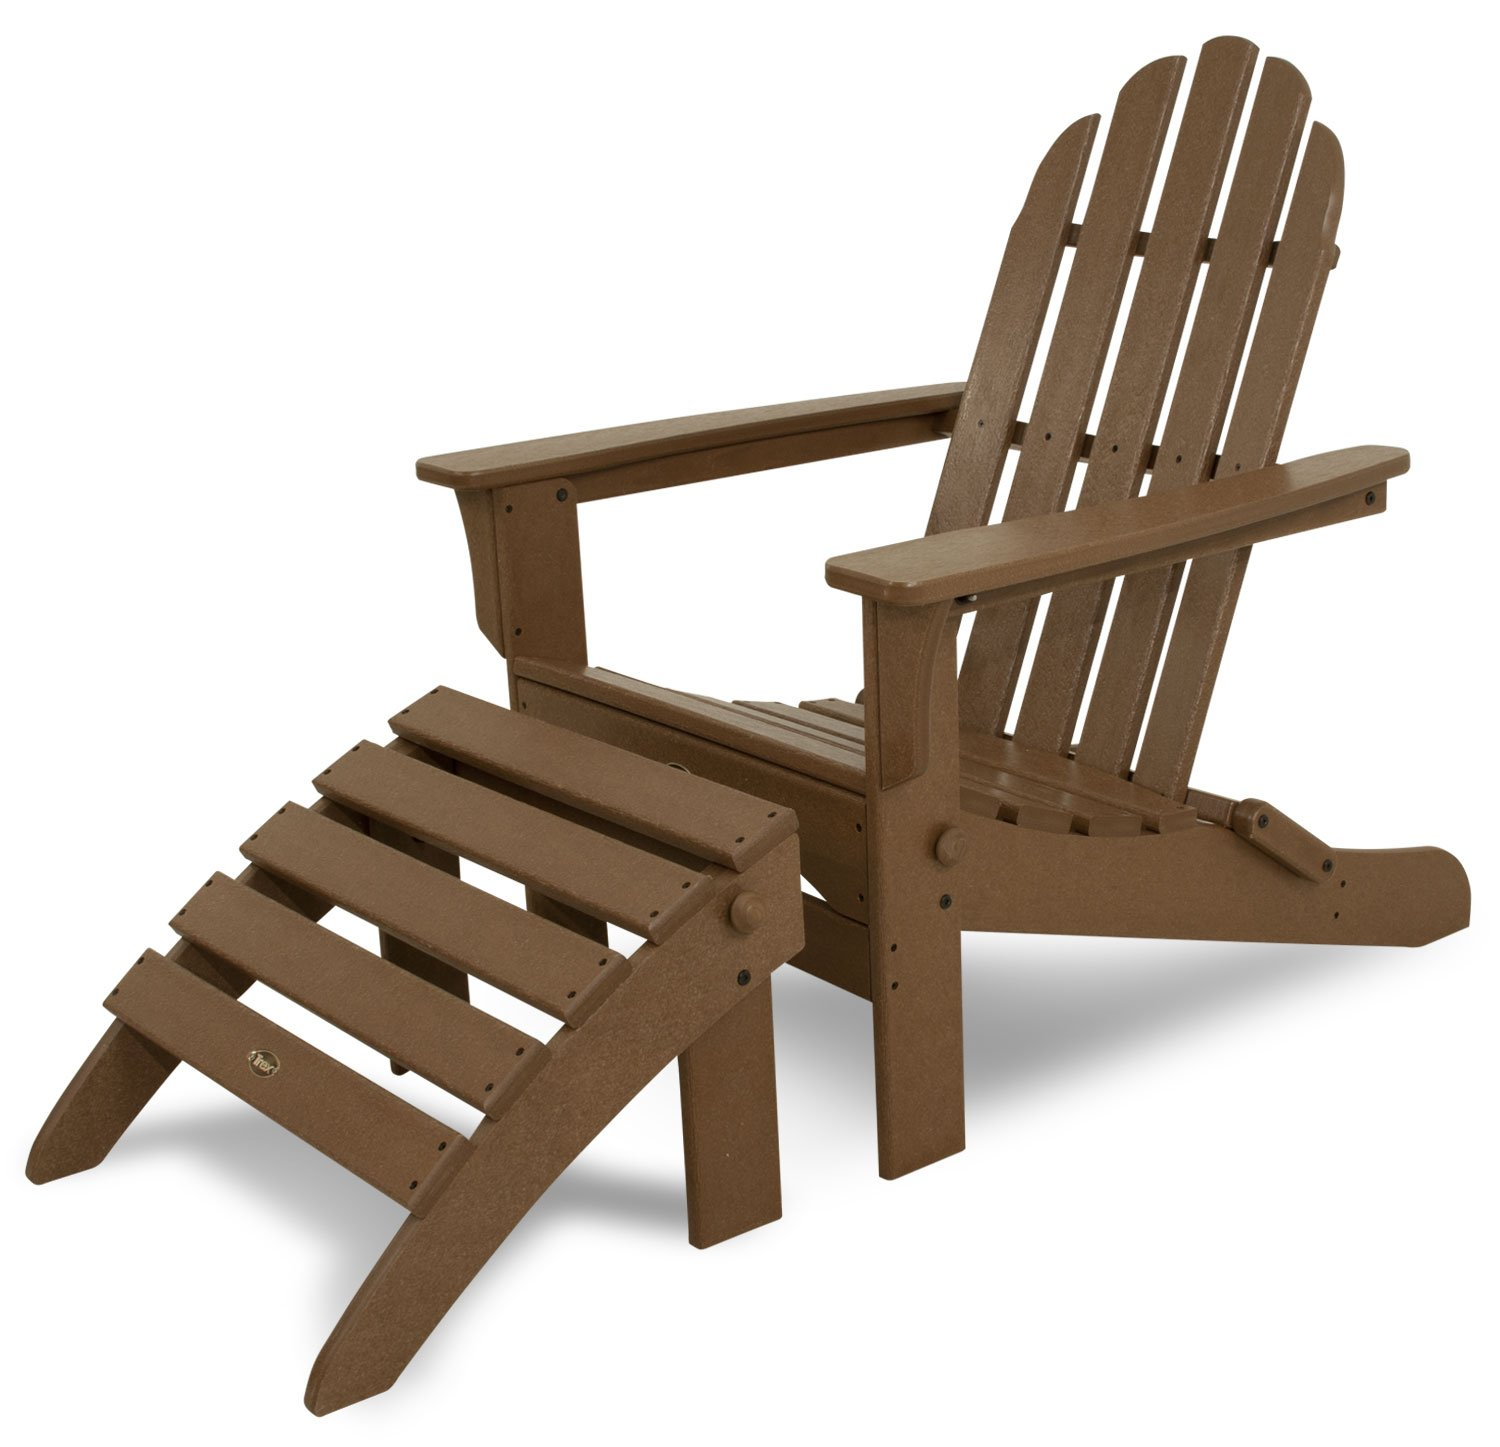 Trex Outdoor Furniture Cape Cod Folding Adirondack Chair Tree